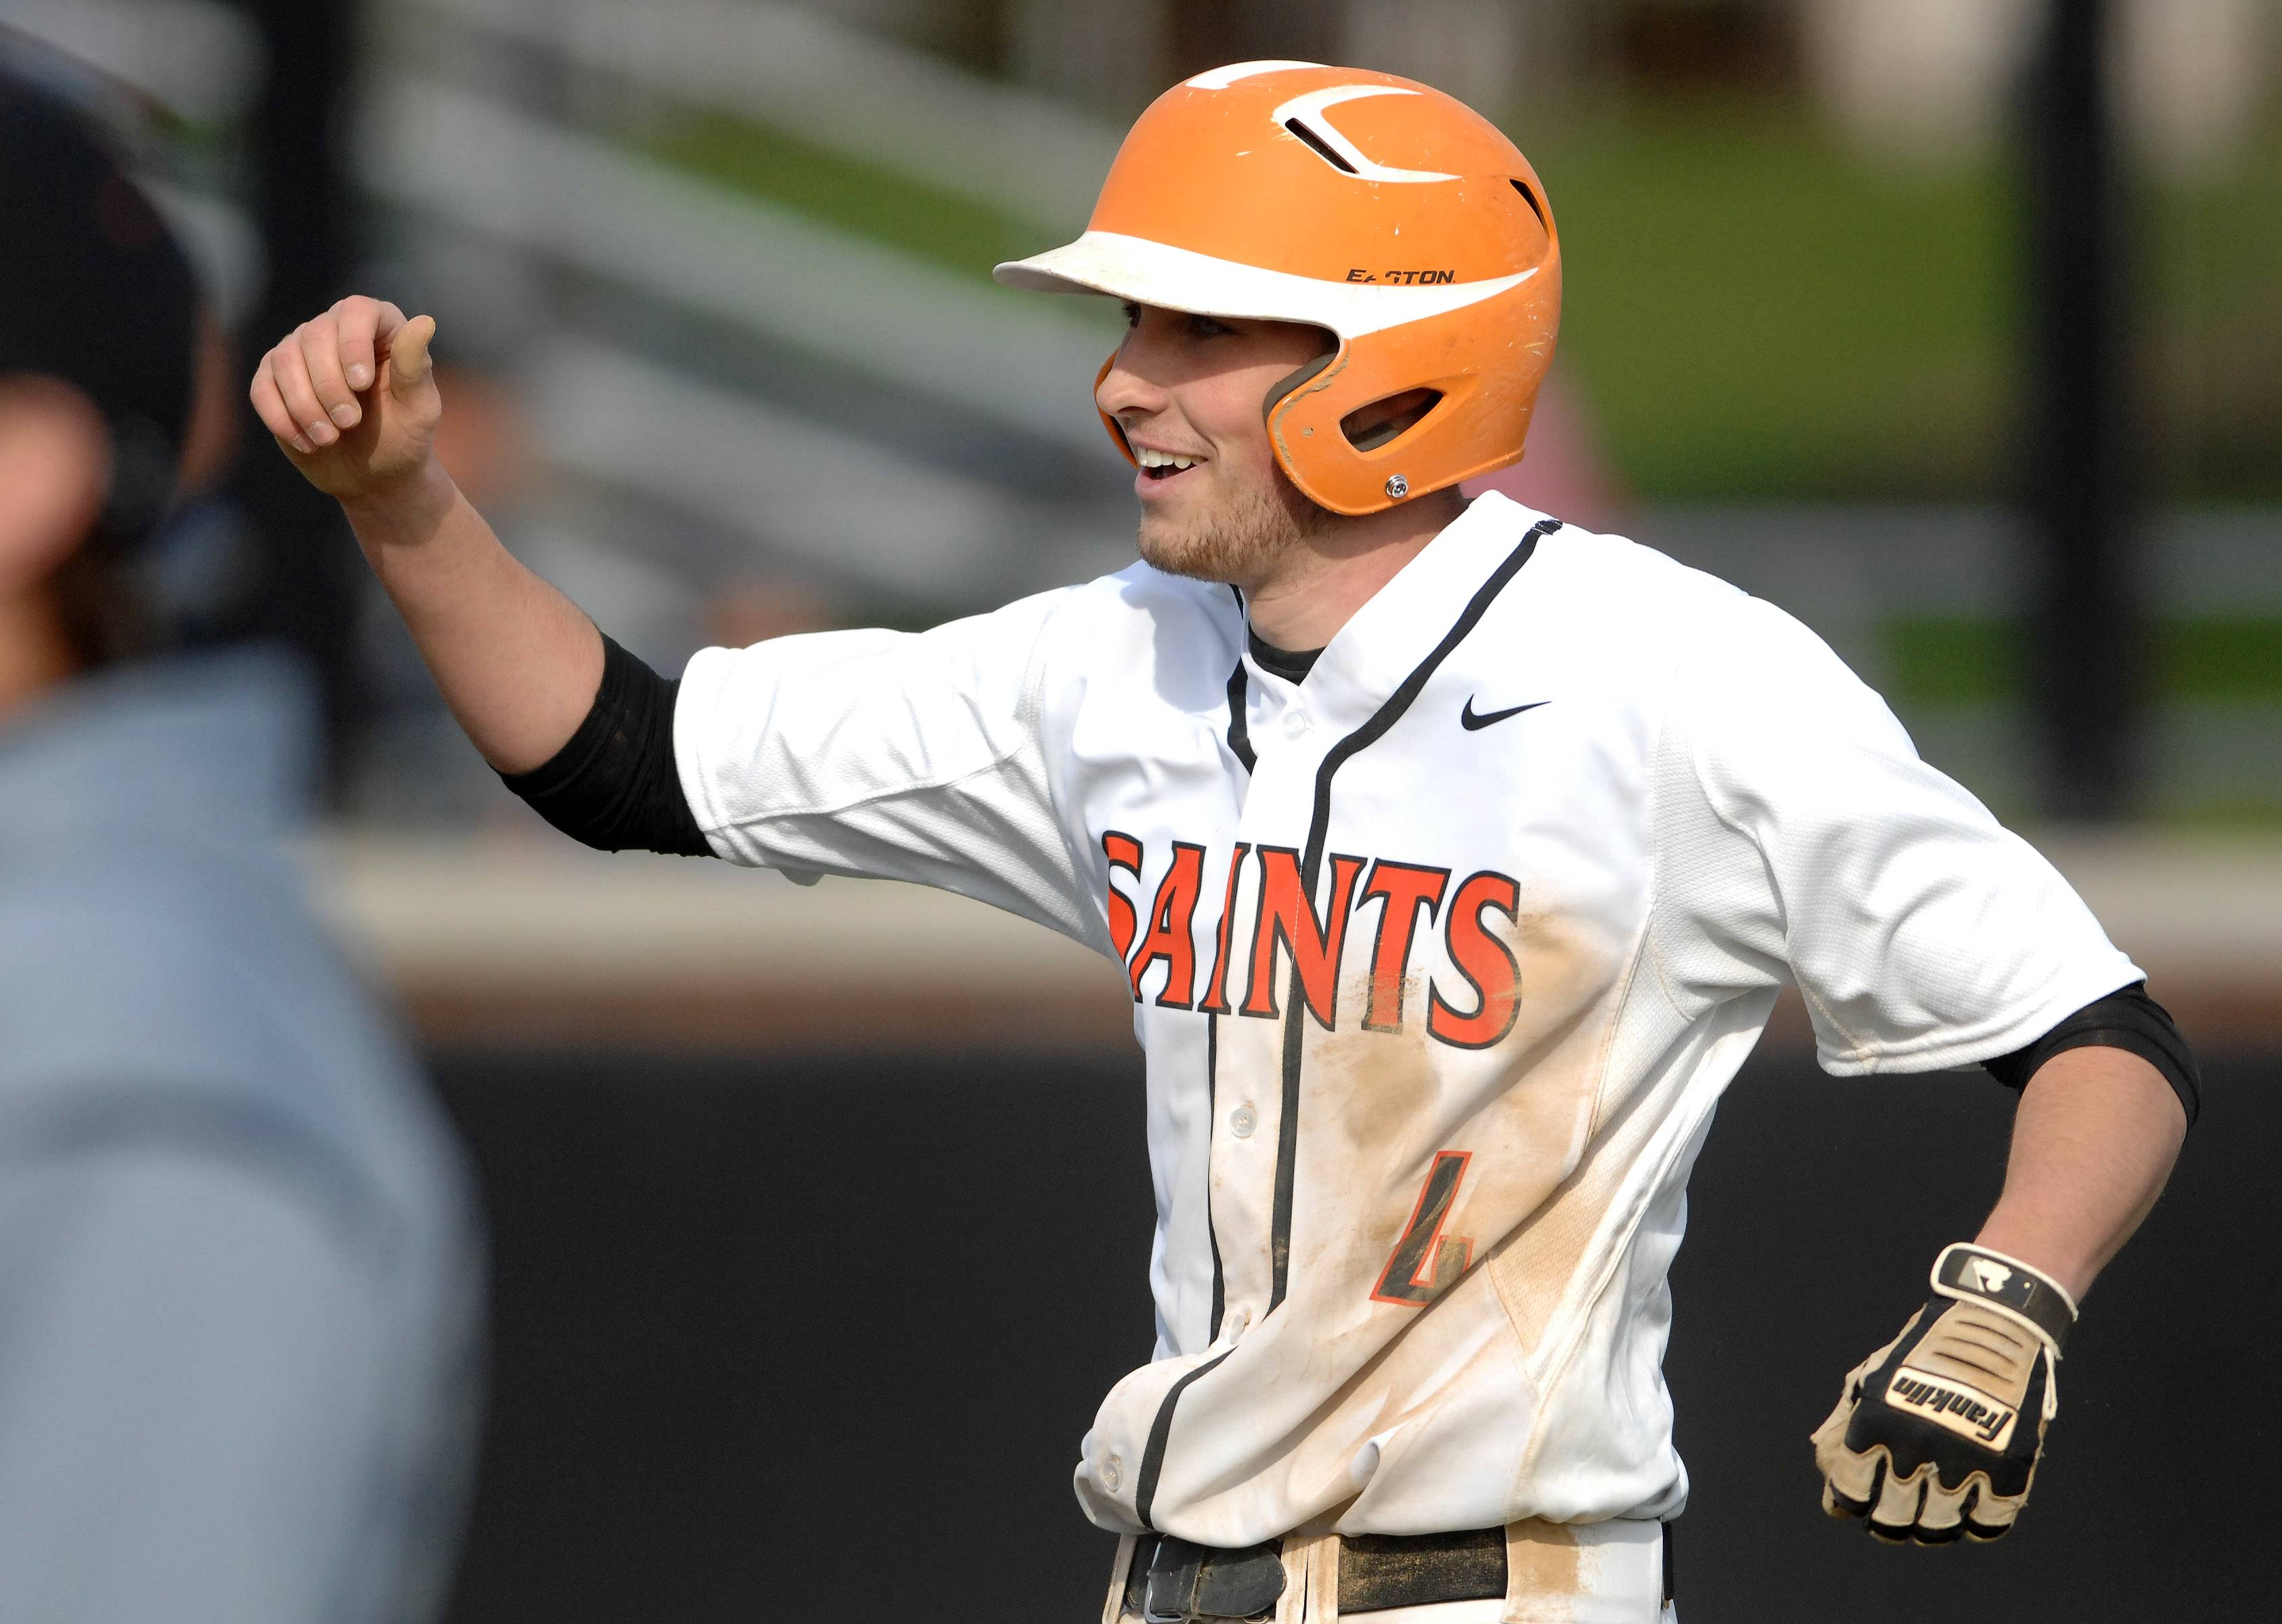 St. Charles East's Charles Alex Abate (4) is congratulated as he returns to the dugout after an RBI double during Tuesday's game at St. Charles East. He was thrown out trying to stretch it into a triple.